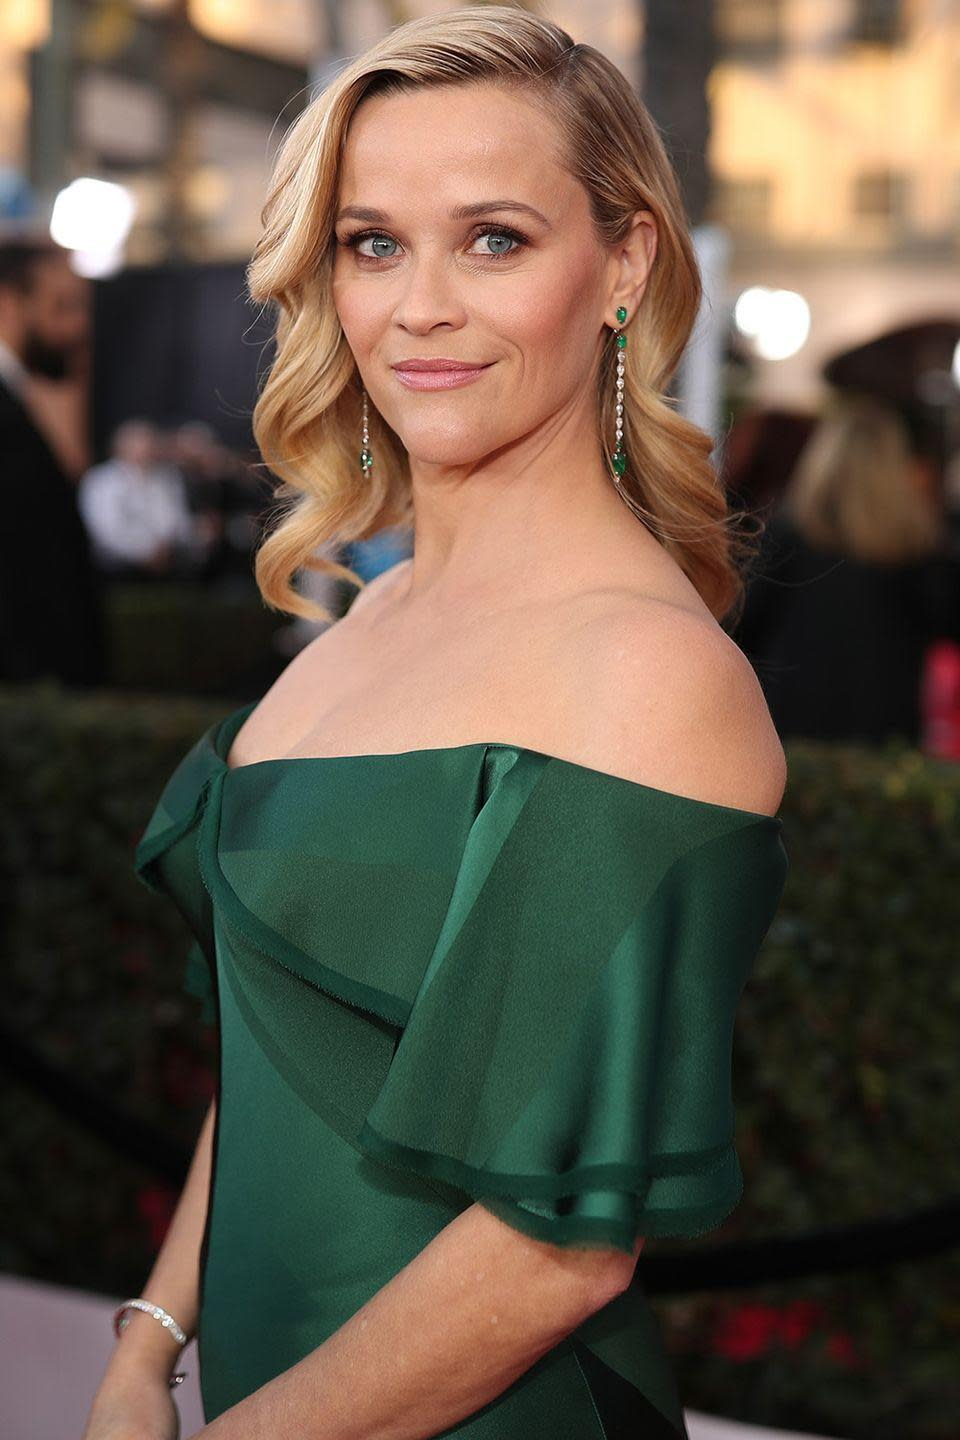 "<p><strong>Born</strong>: Laura Jeanne Reese Witherspoon</p><p>Early in <a href=""https://www.vogue.com.au/celebrity/news/to-whom-it-may-concern-the-real-names-of-your-favourite-designers-celebrities-and-models/image-gallery/d39ada4da1dbc8d79f84209f95ea897b?pos=2"" rel=""nofollow noopener"" target=""_blank"" data-ylk=""slk:her career"" class=""link rapid-noclick-resp"">her career</a>, then-Laura Jeanne adopted her mother's maiden name as her first name.</p>"